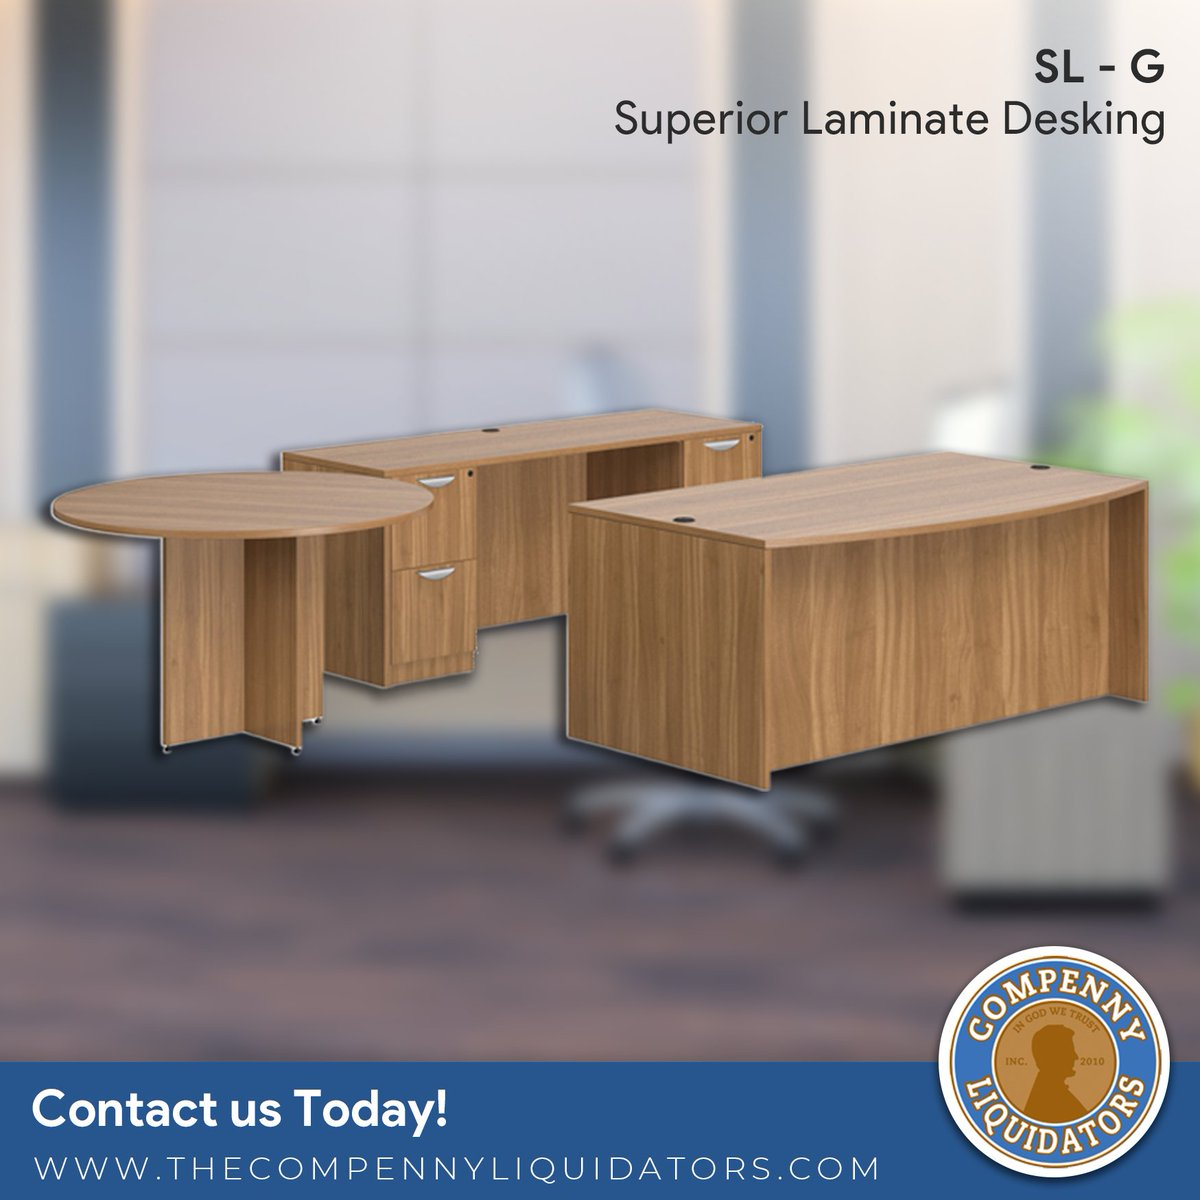 The perfect piece of furniture to make your office look classy! . . . #Work #OfficeWork #Office #Cubicle #Workplace #Business #SmallBusiness #SMB #Leadership #SocialBusiness #Furniture #OfficeFurniture #Miami #WorkSpace #Florida